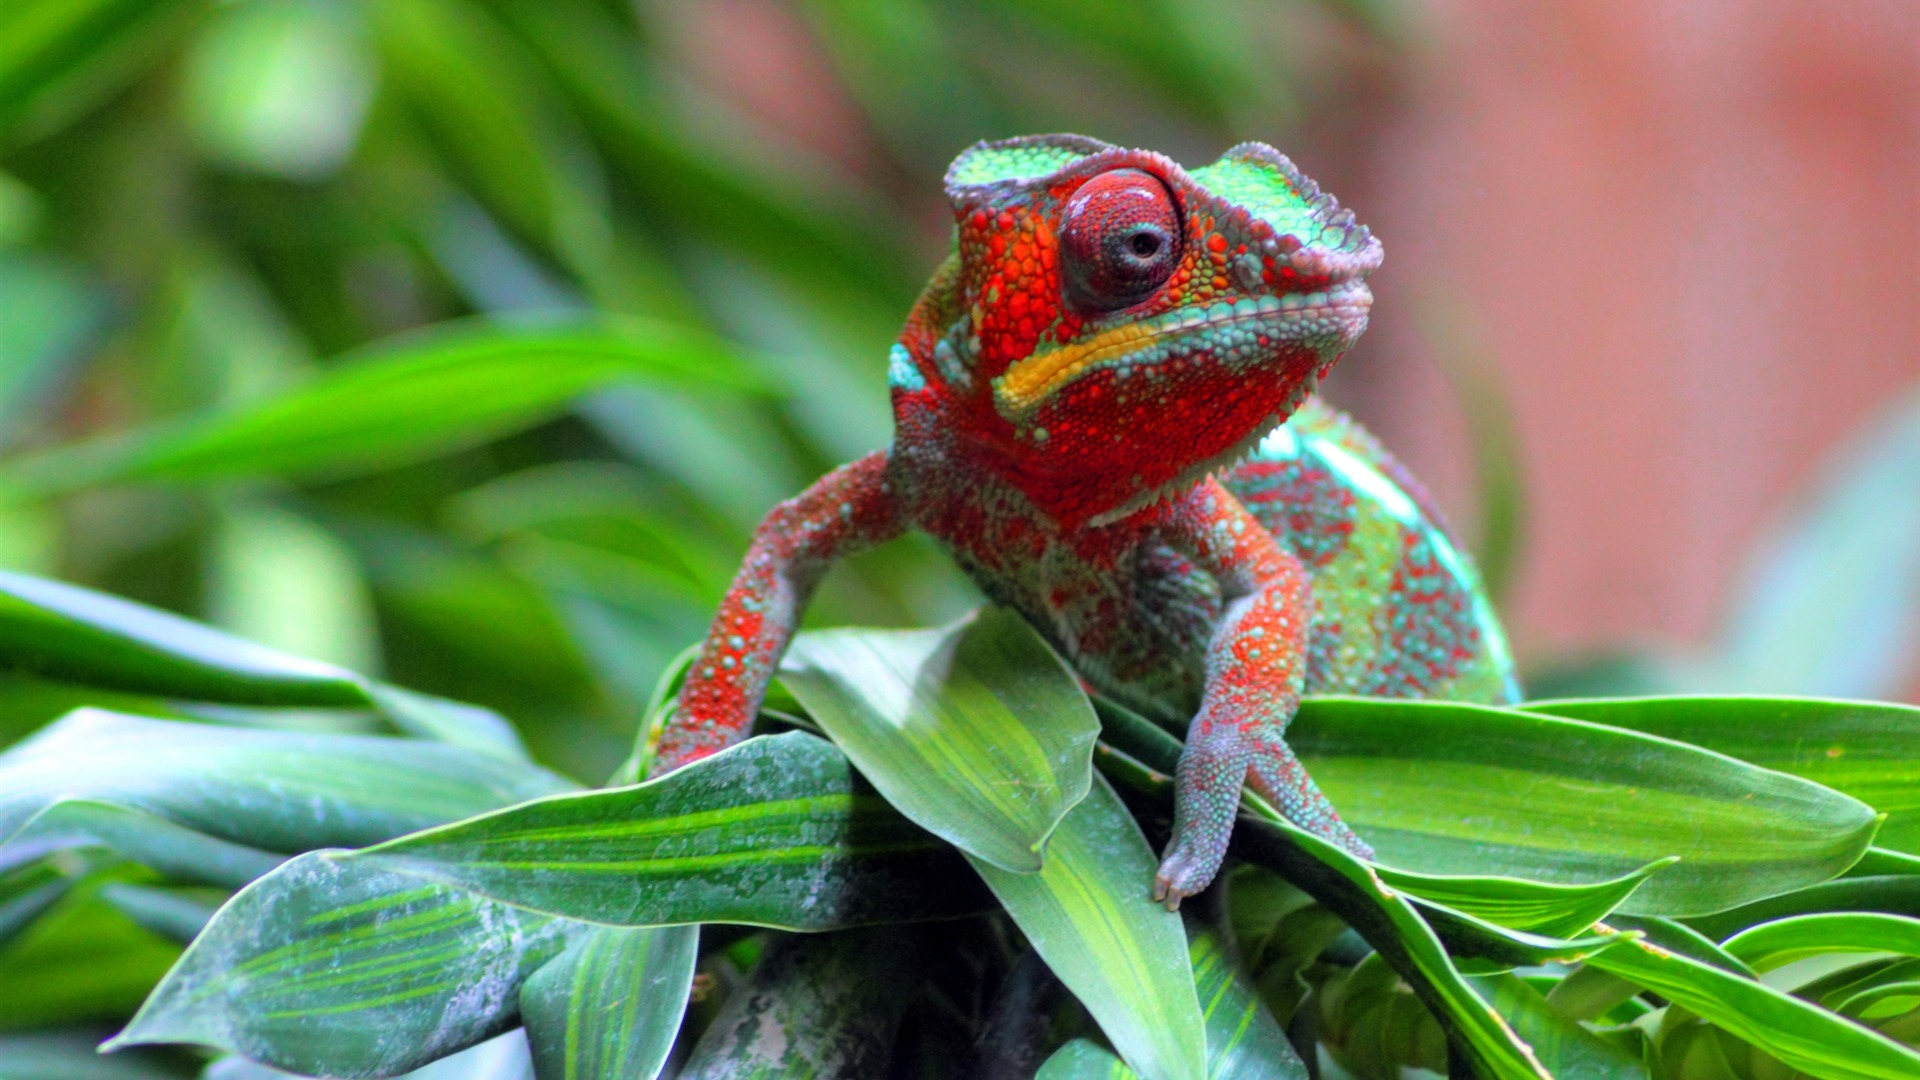 The Best Desktop Wallpapers Hd Red Chameleon Animal Photography Wallpaper Preview